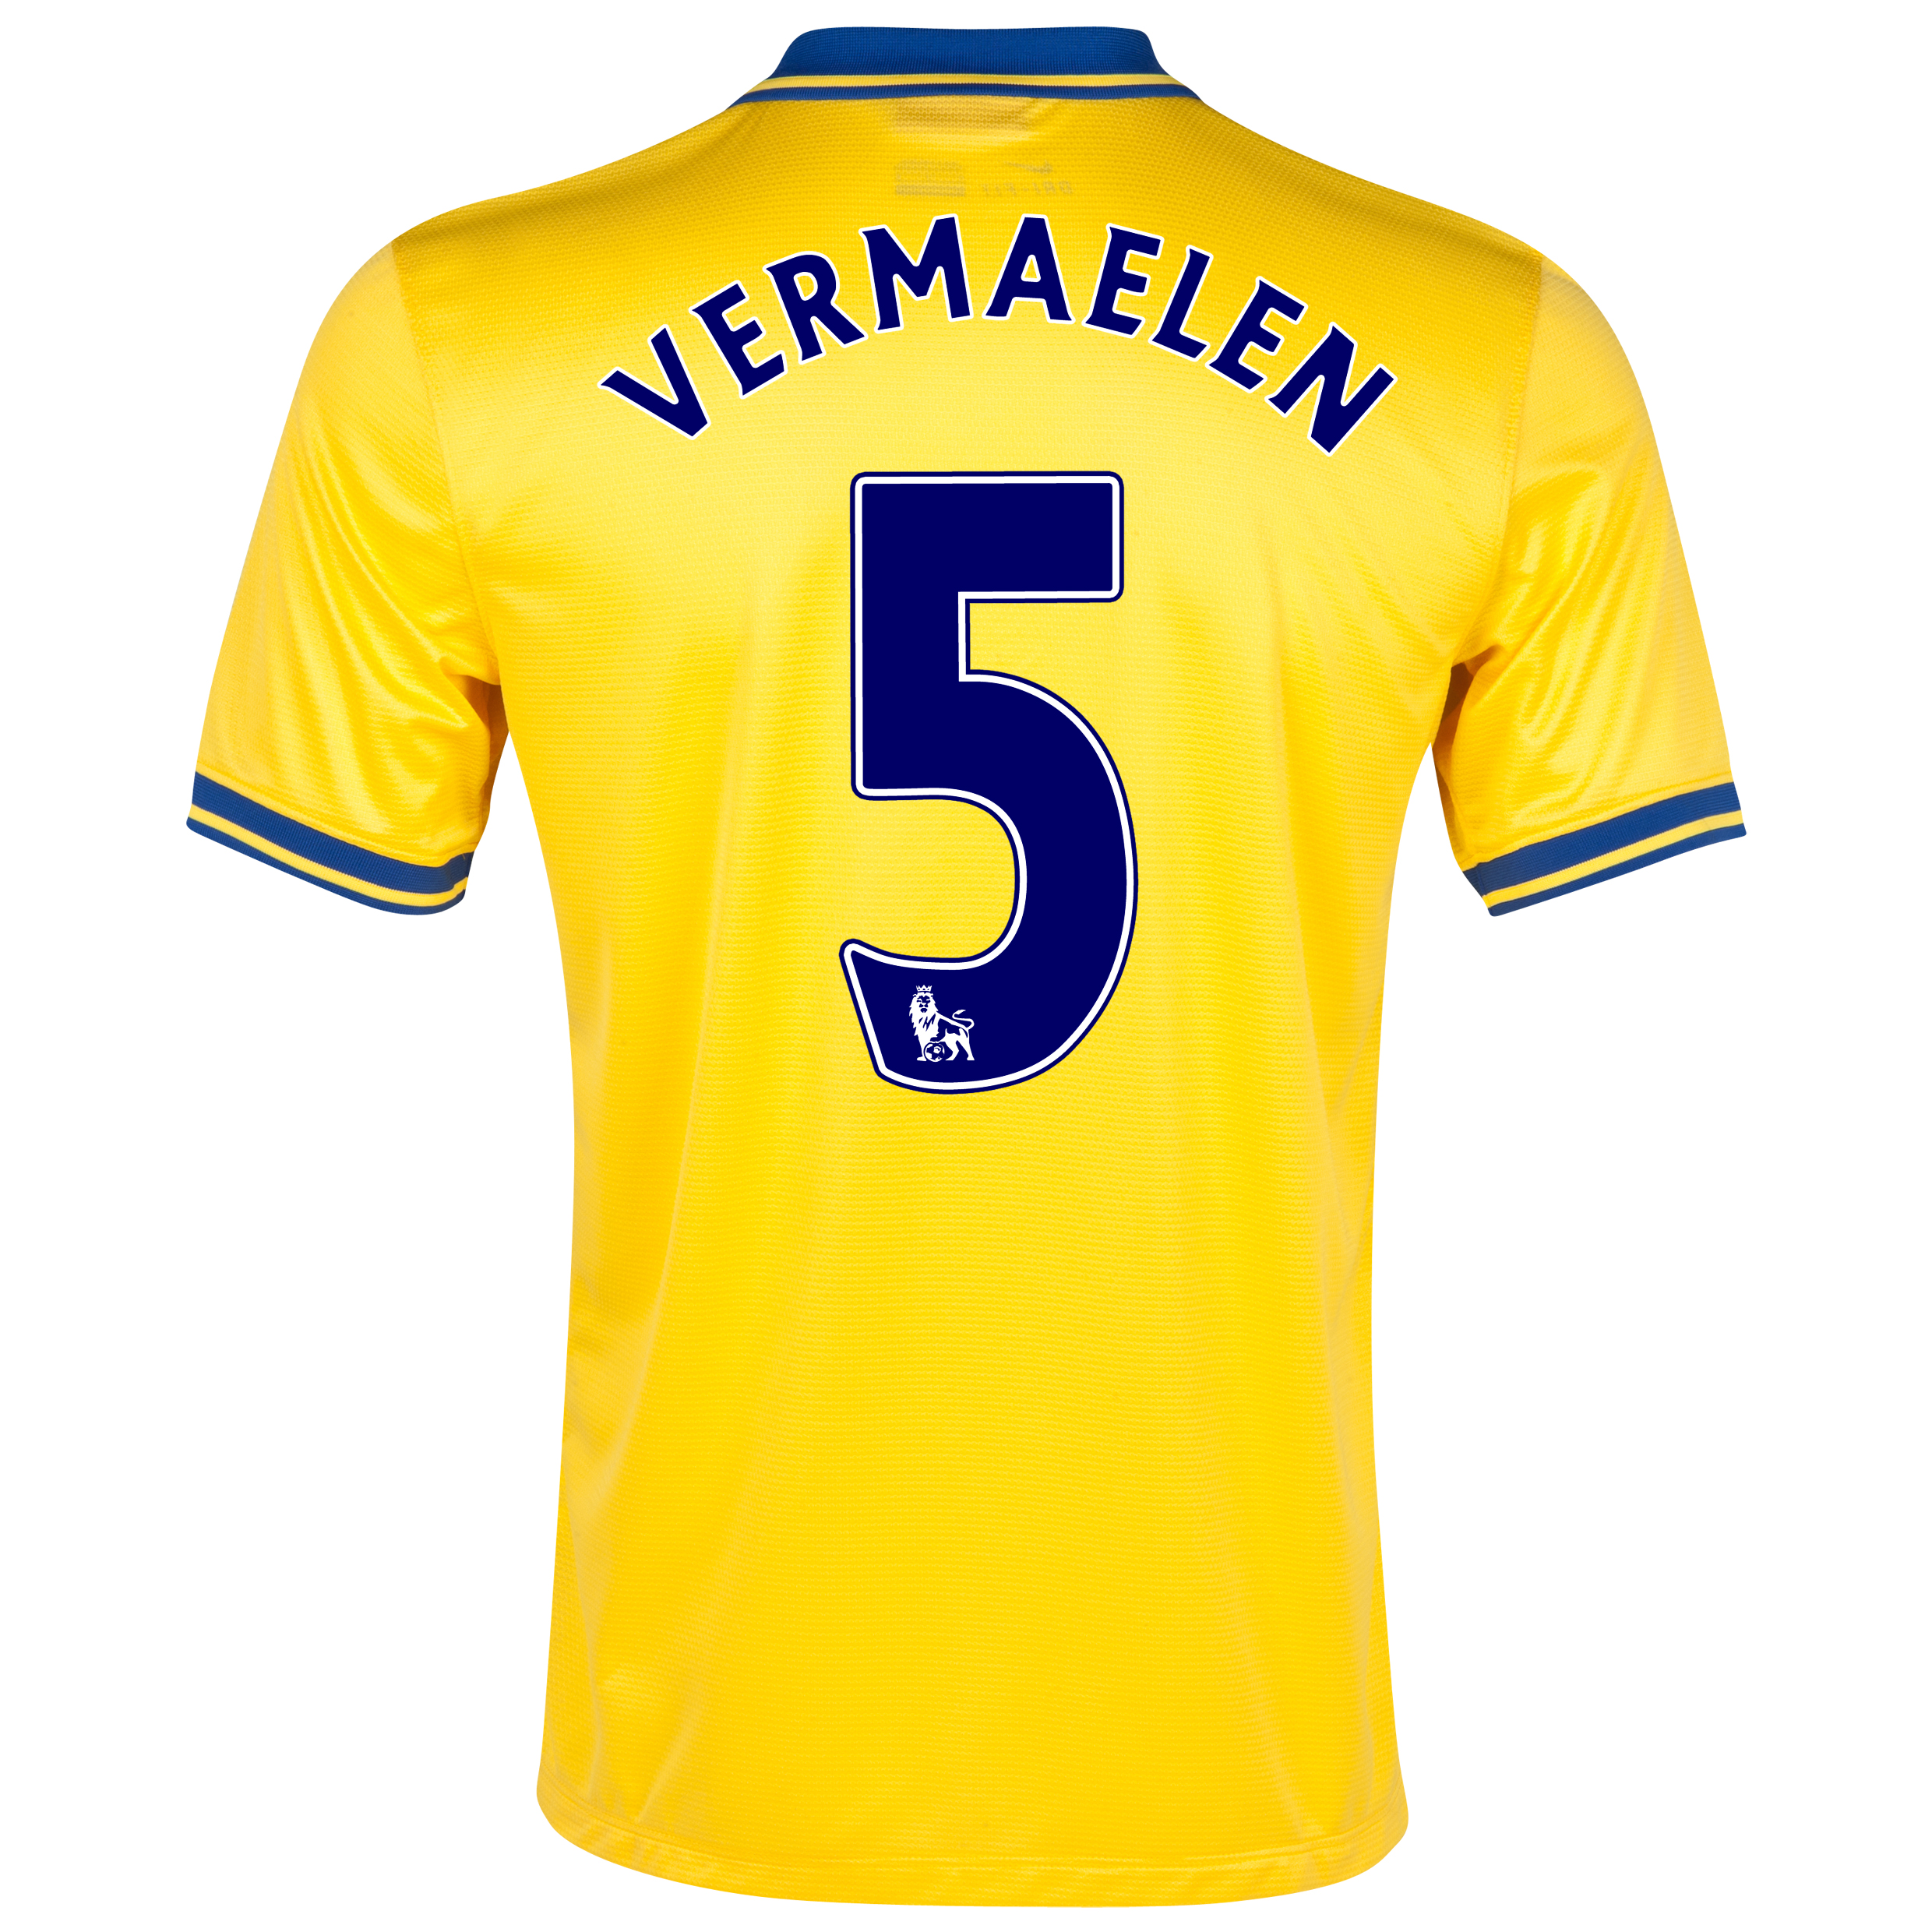 Arsenal Away Shirt 2013/14 with Vermaelen 5 printing